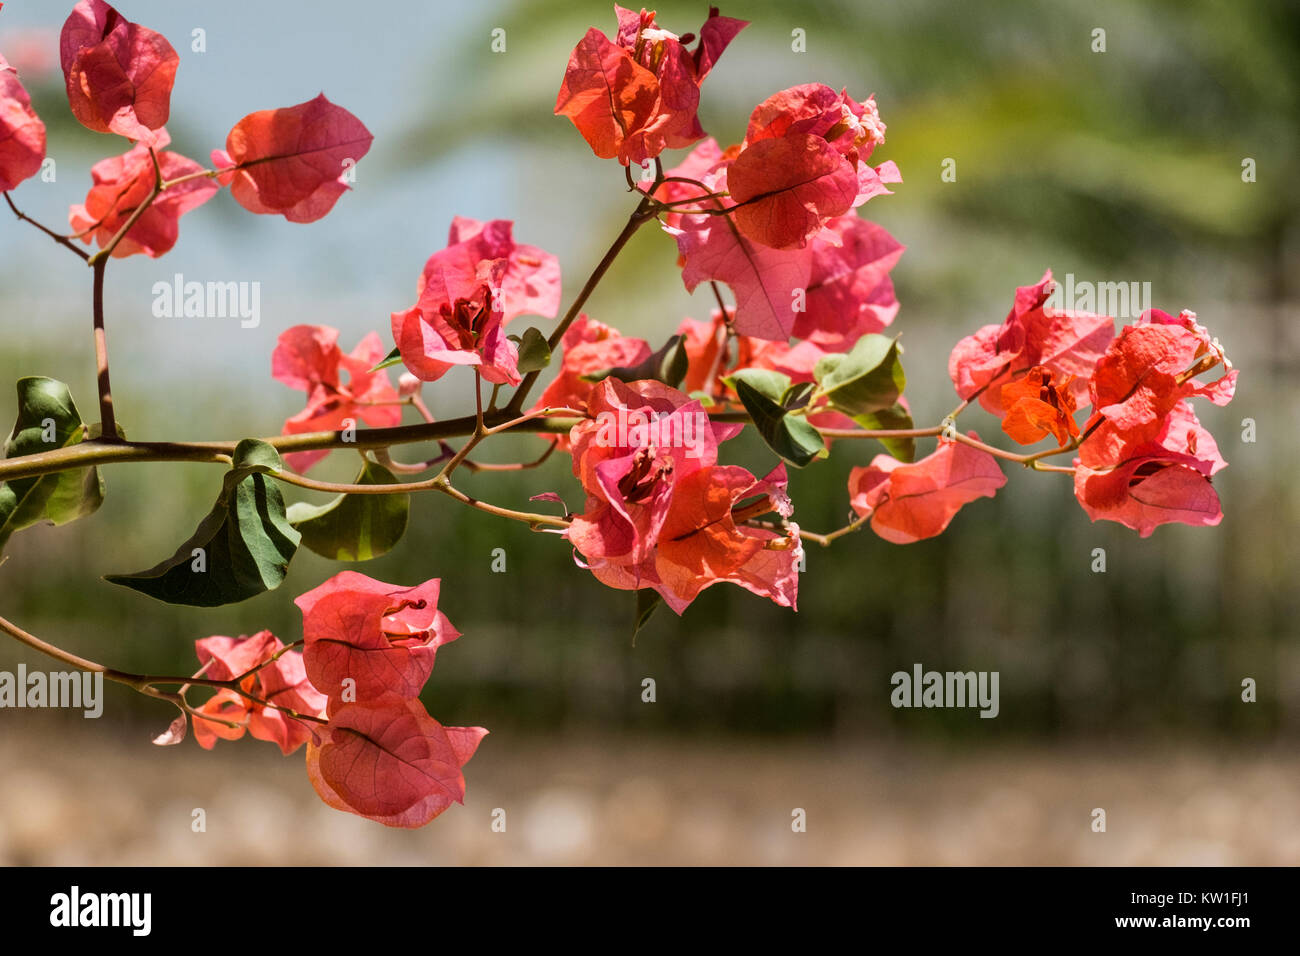 Coral-pink flowers of the evergreen shrub Bougainvillea (Bougainvillea glabra) - Stock Image